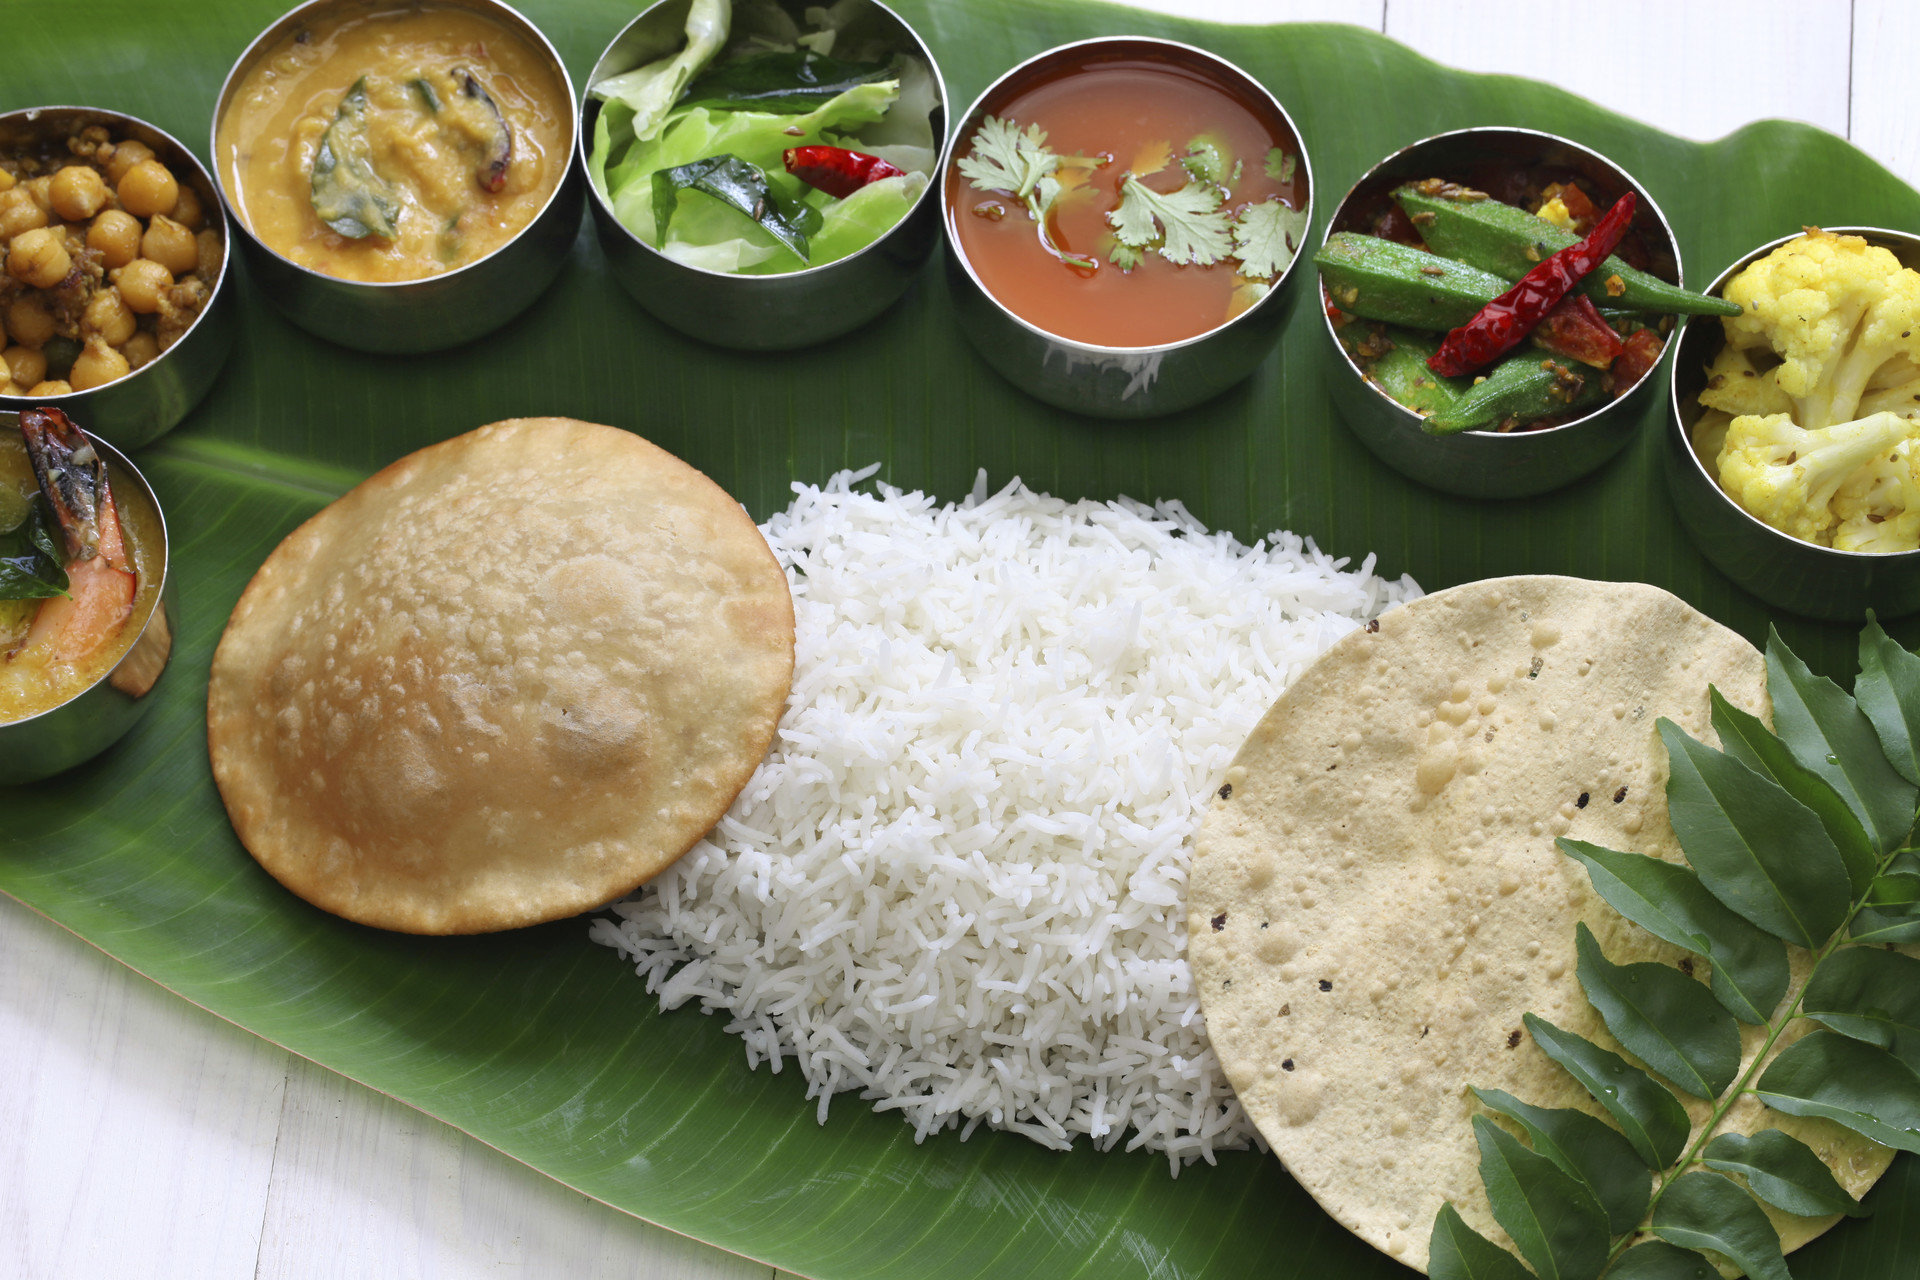 Travel Tips food plate dish meal cuisine asian food fish lunch indian cuisine southeast asian food steamed rice several meat